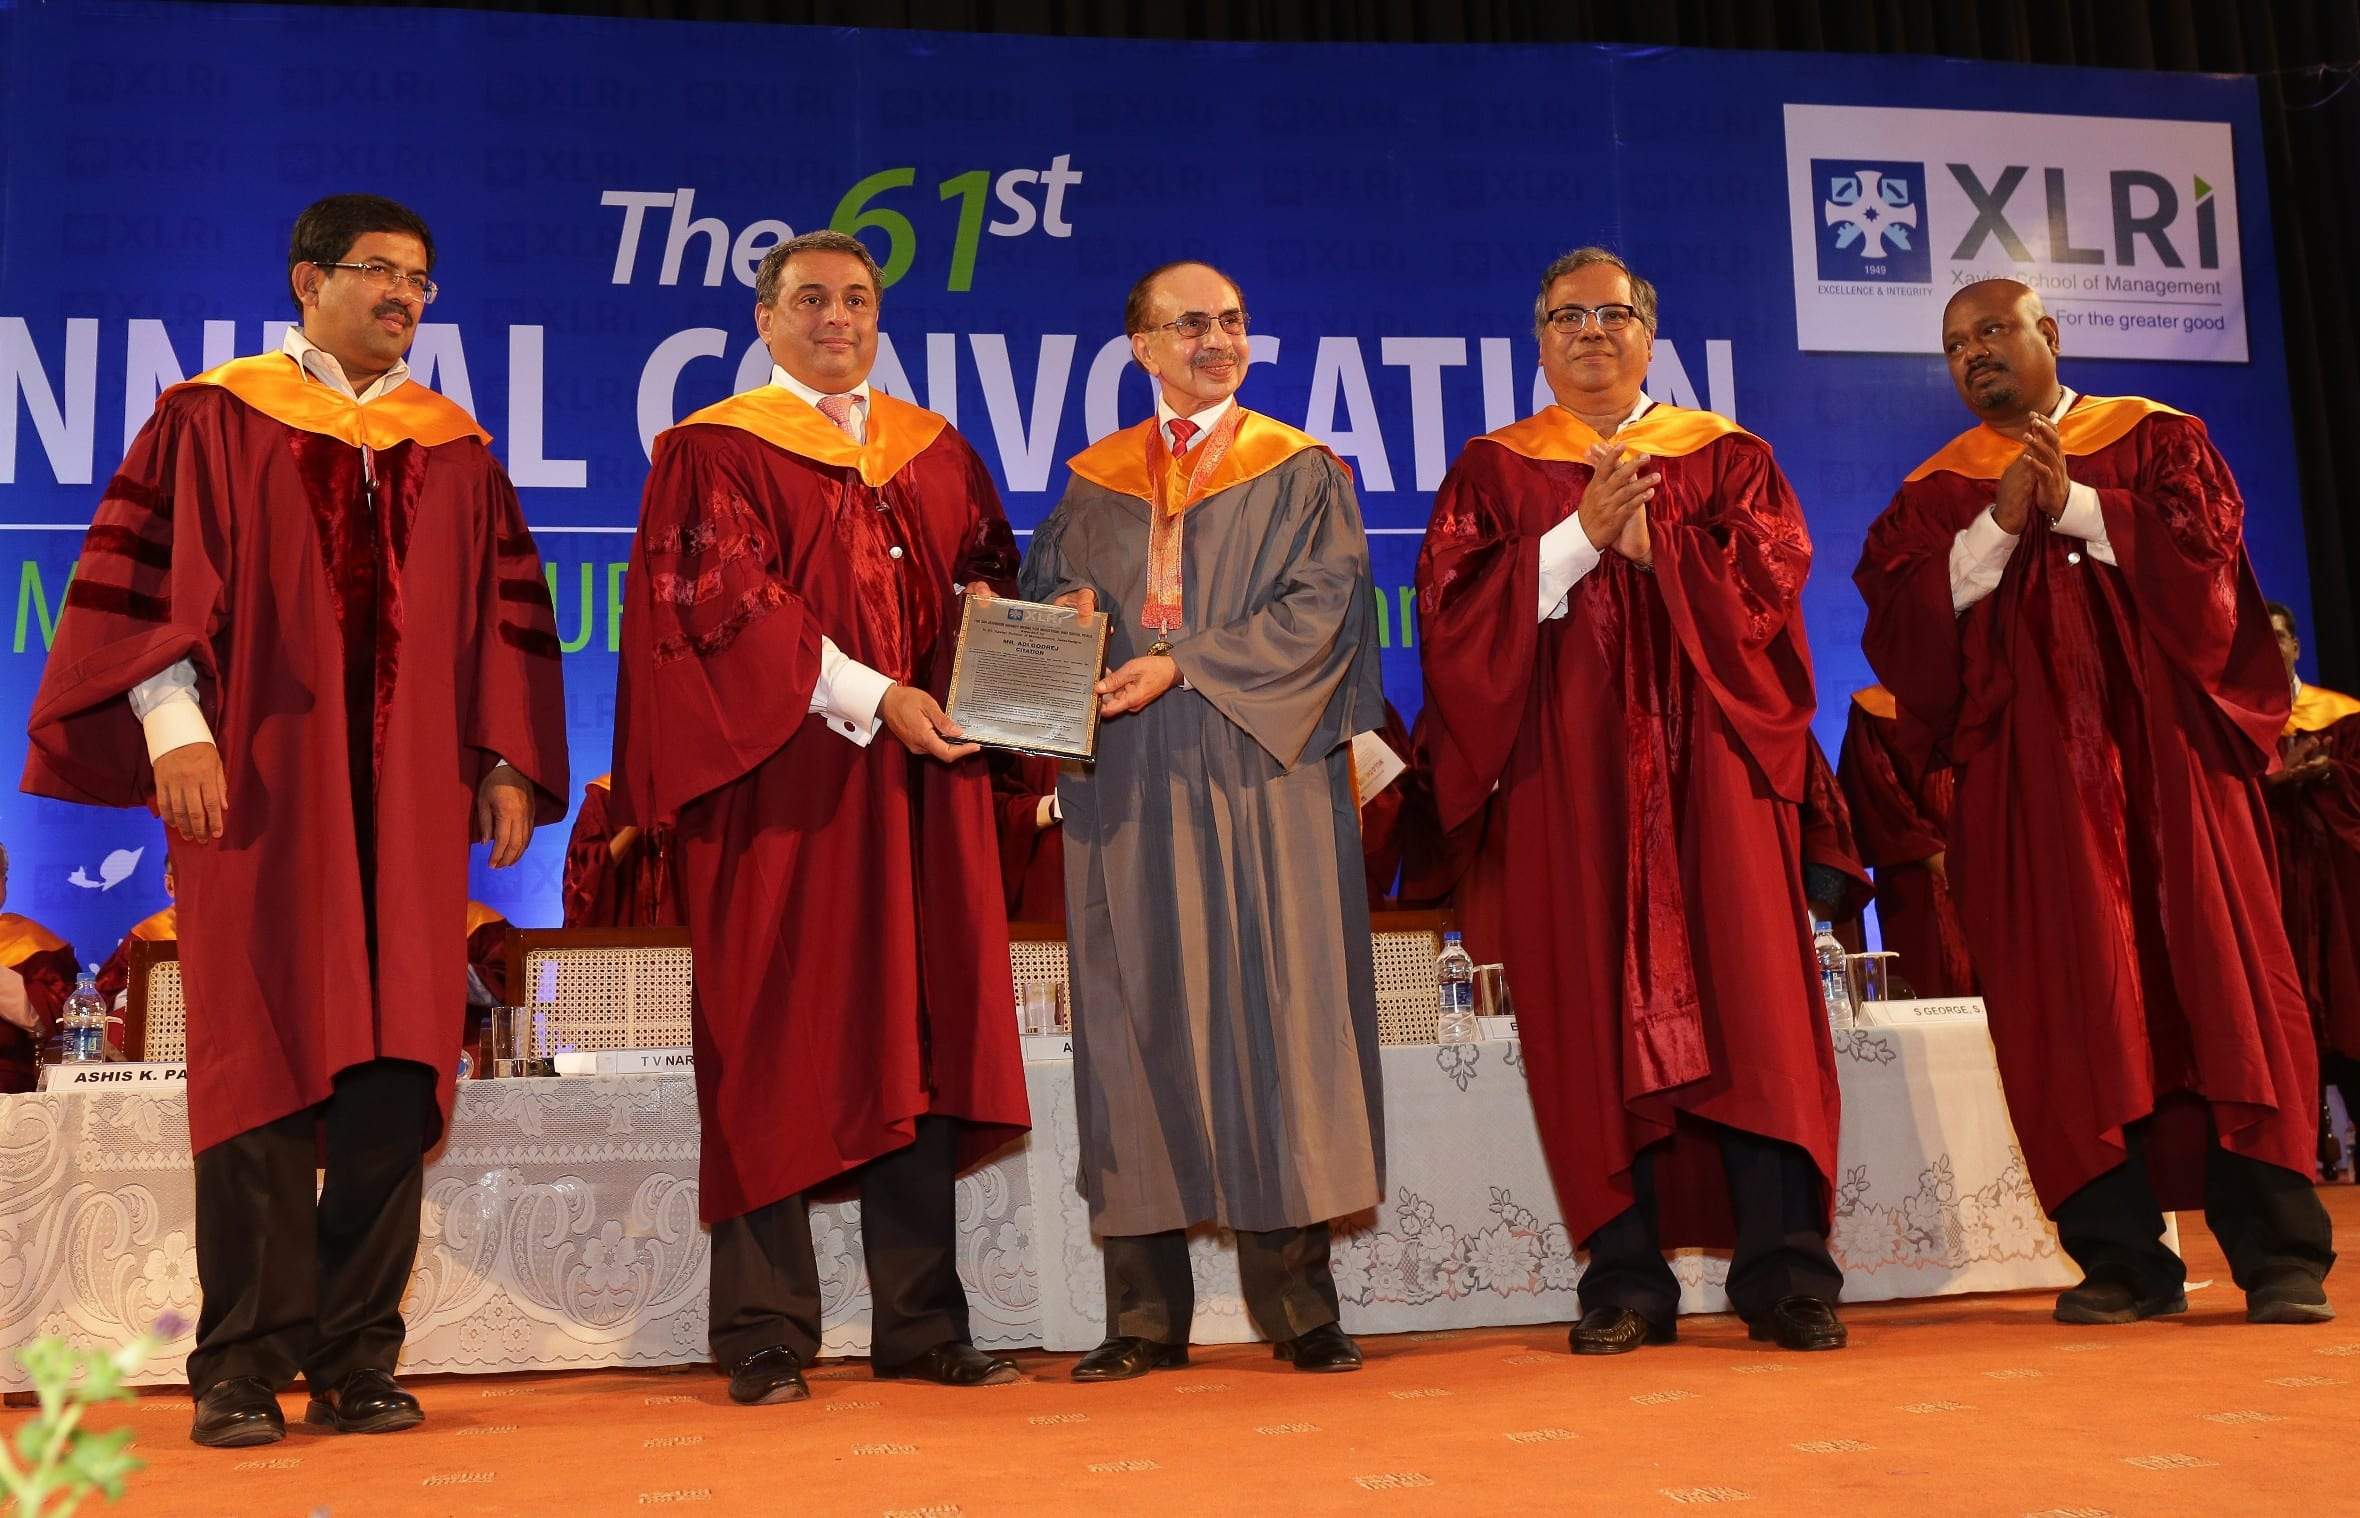 XLRI celebrated 61st Annual Convocation, Adi Godrej honoured